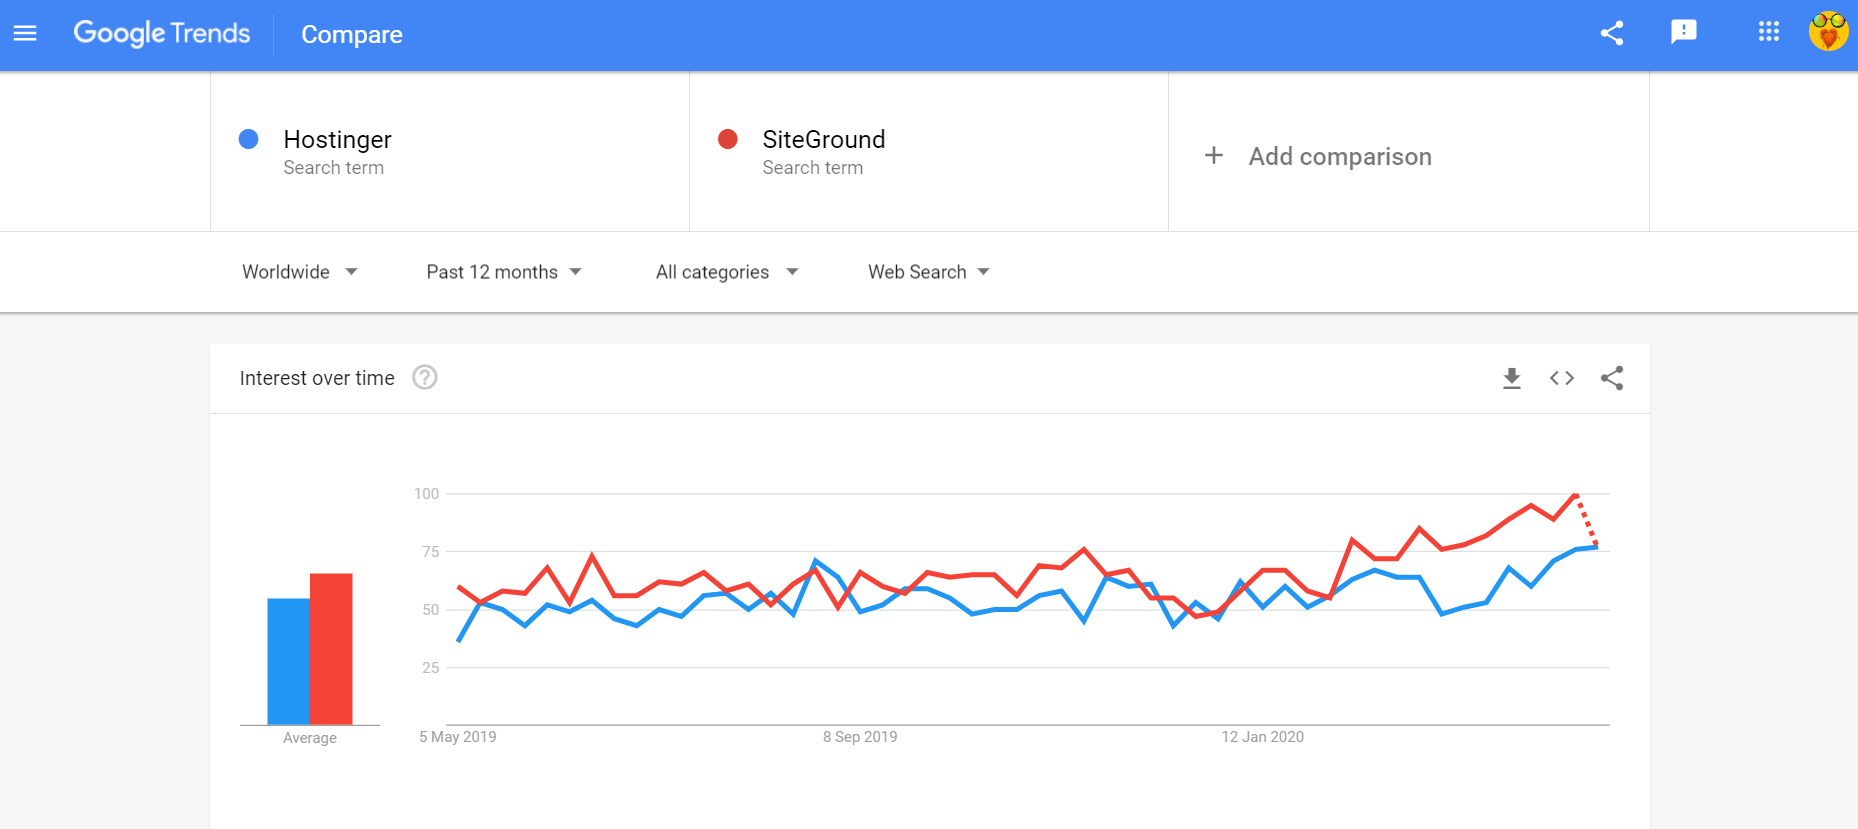 Google trends Hostinger vs SiteGround